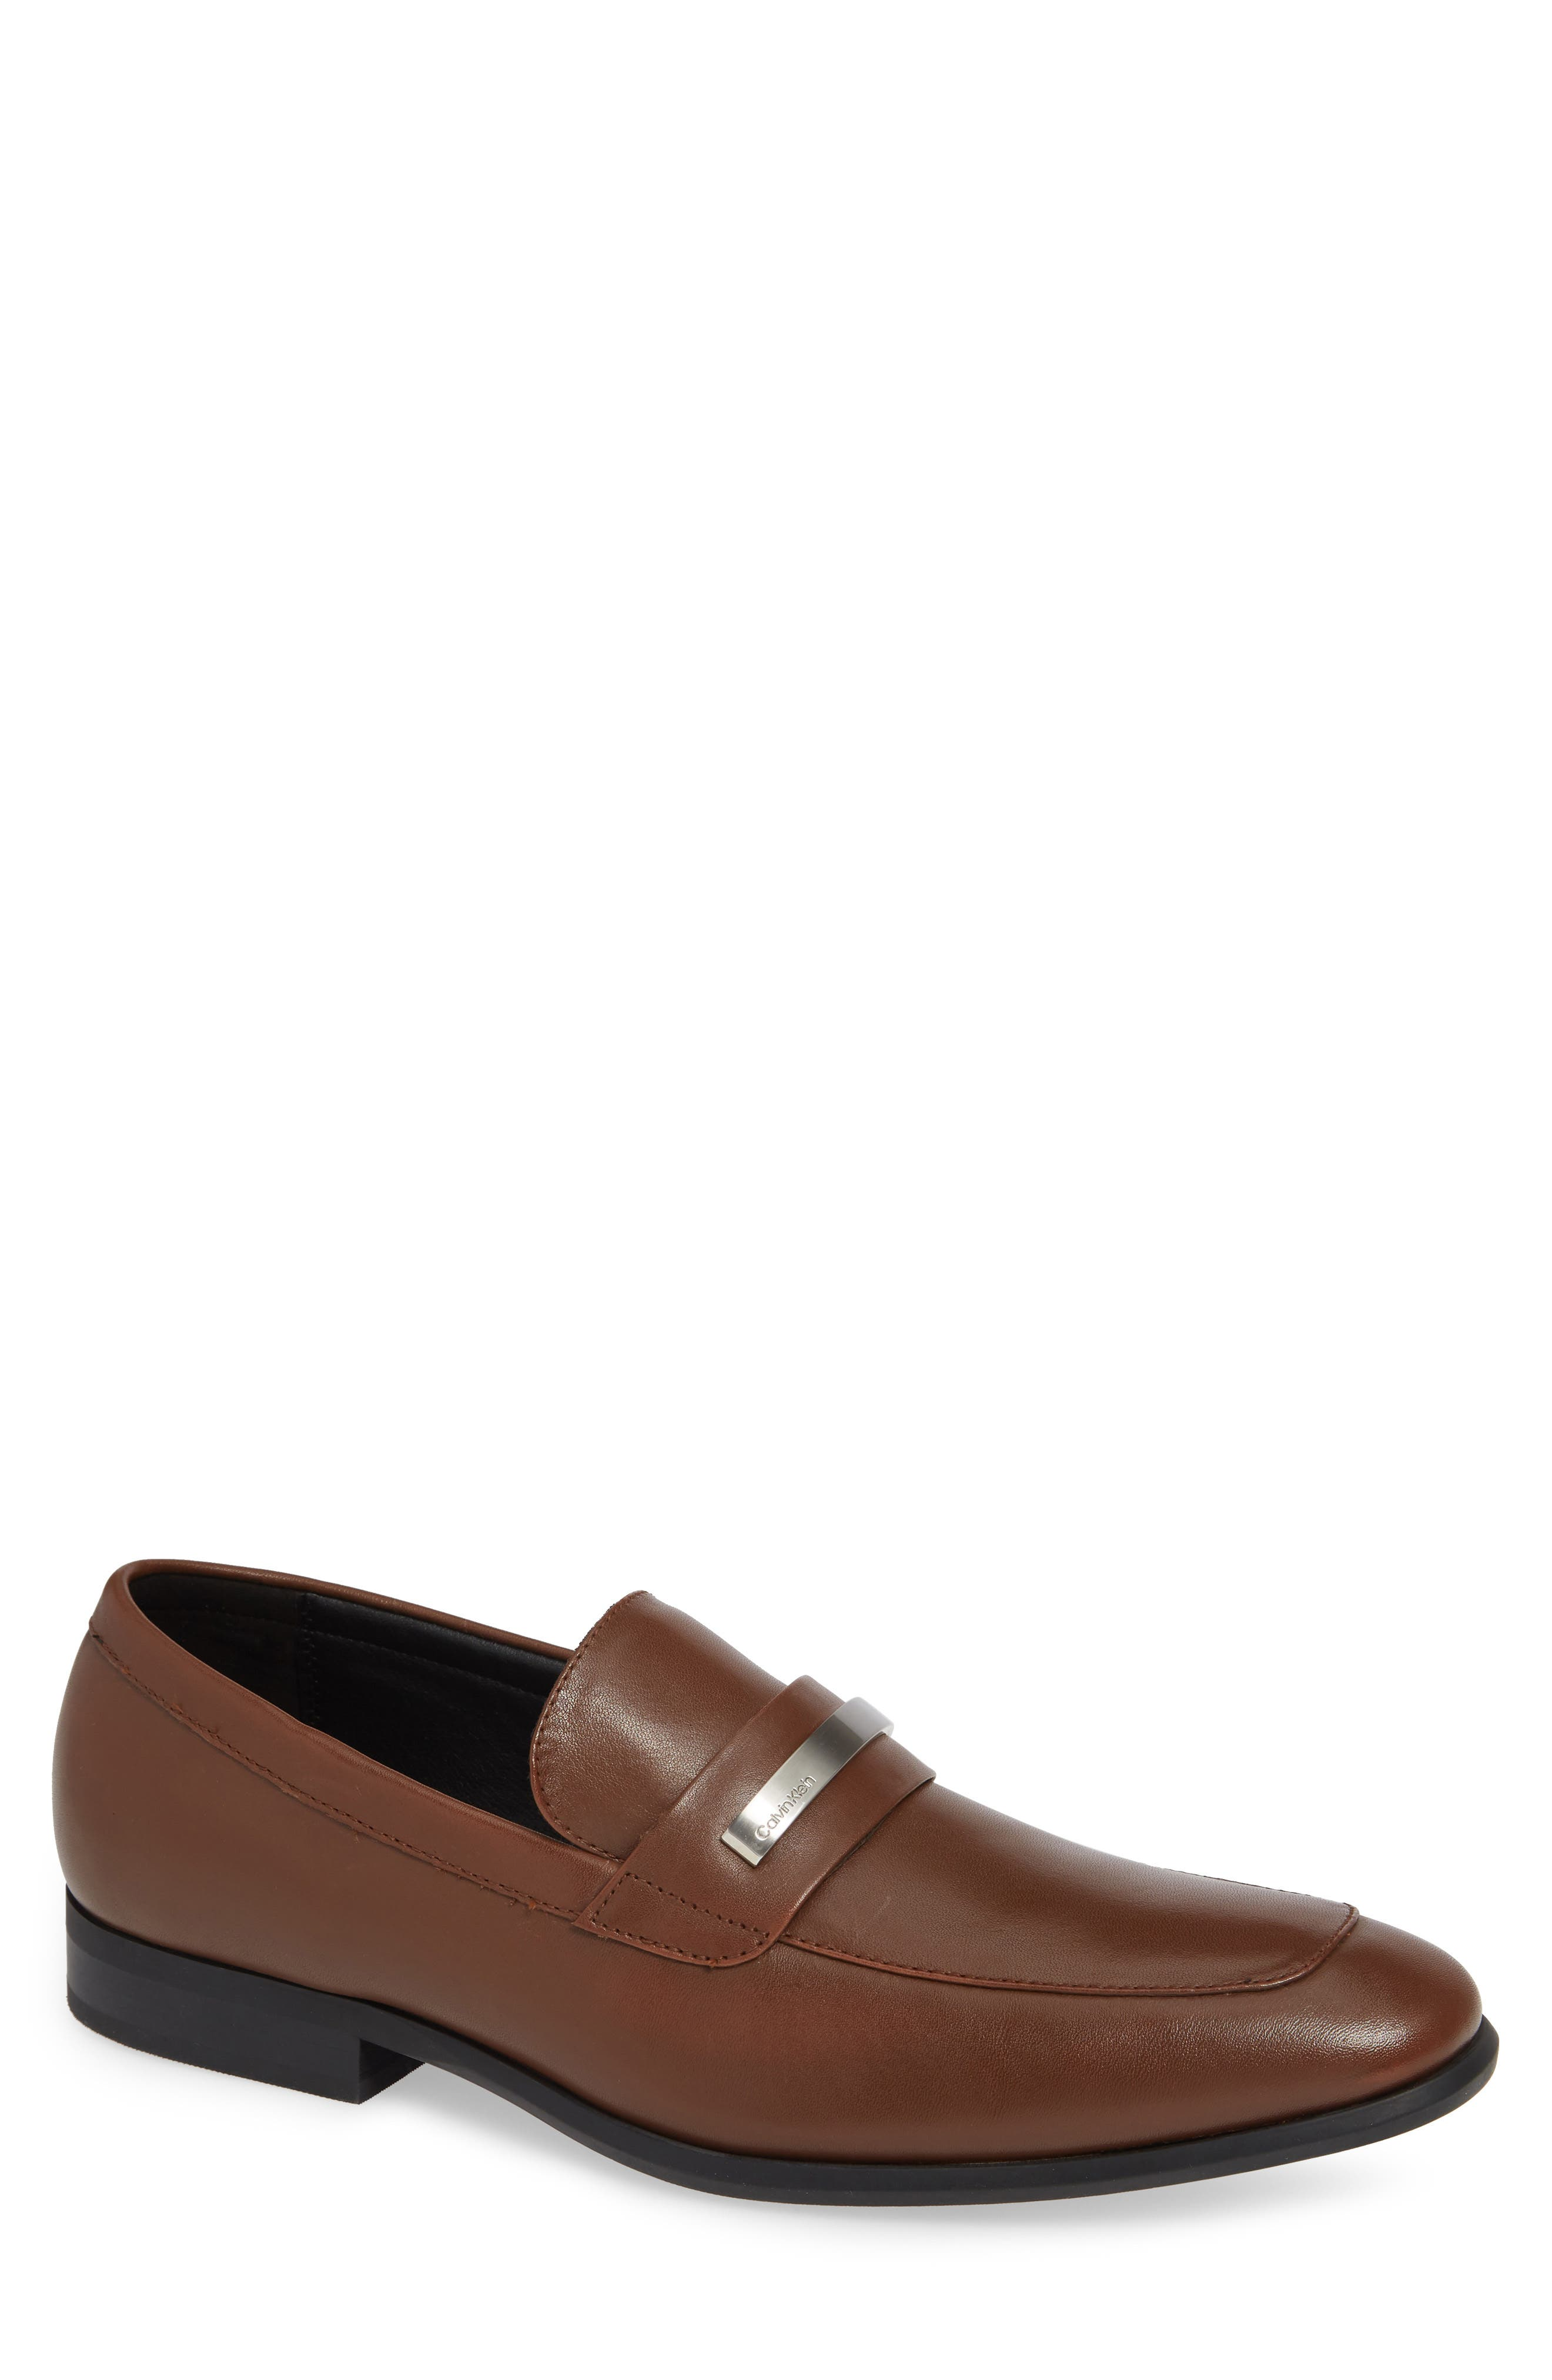 Leon Bit Loafer,                             Main thumbnail 1, color,                             NEW TAN LEATHER